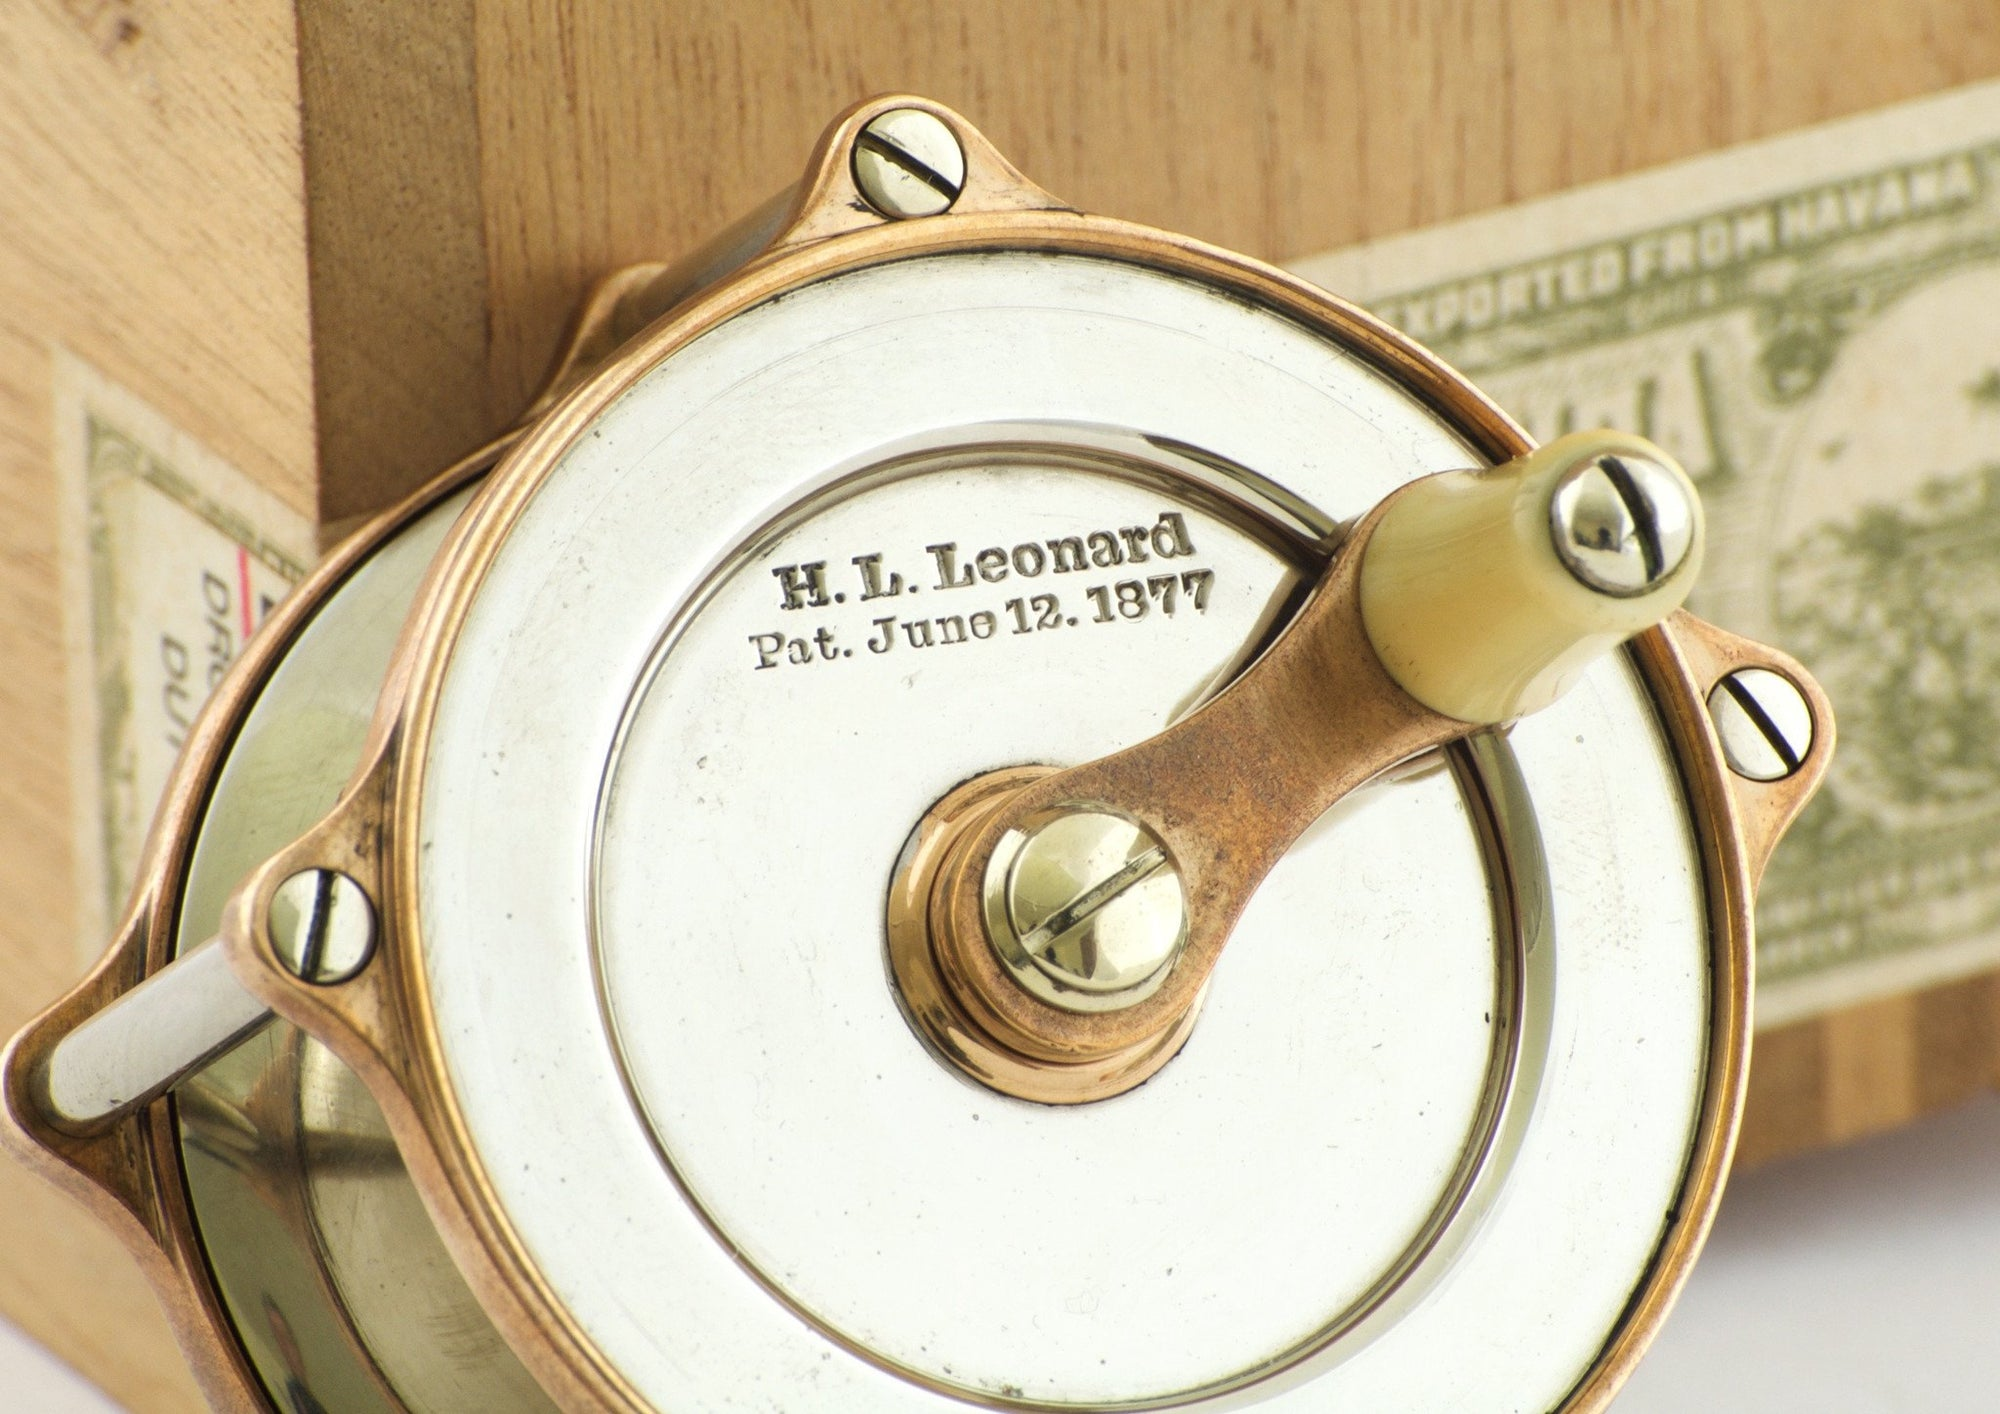 Leonard Bimetal Trout Fly Reel - Smallest Size and Flawless!